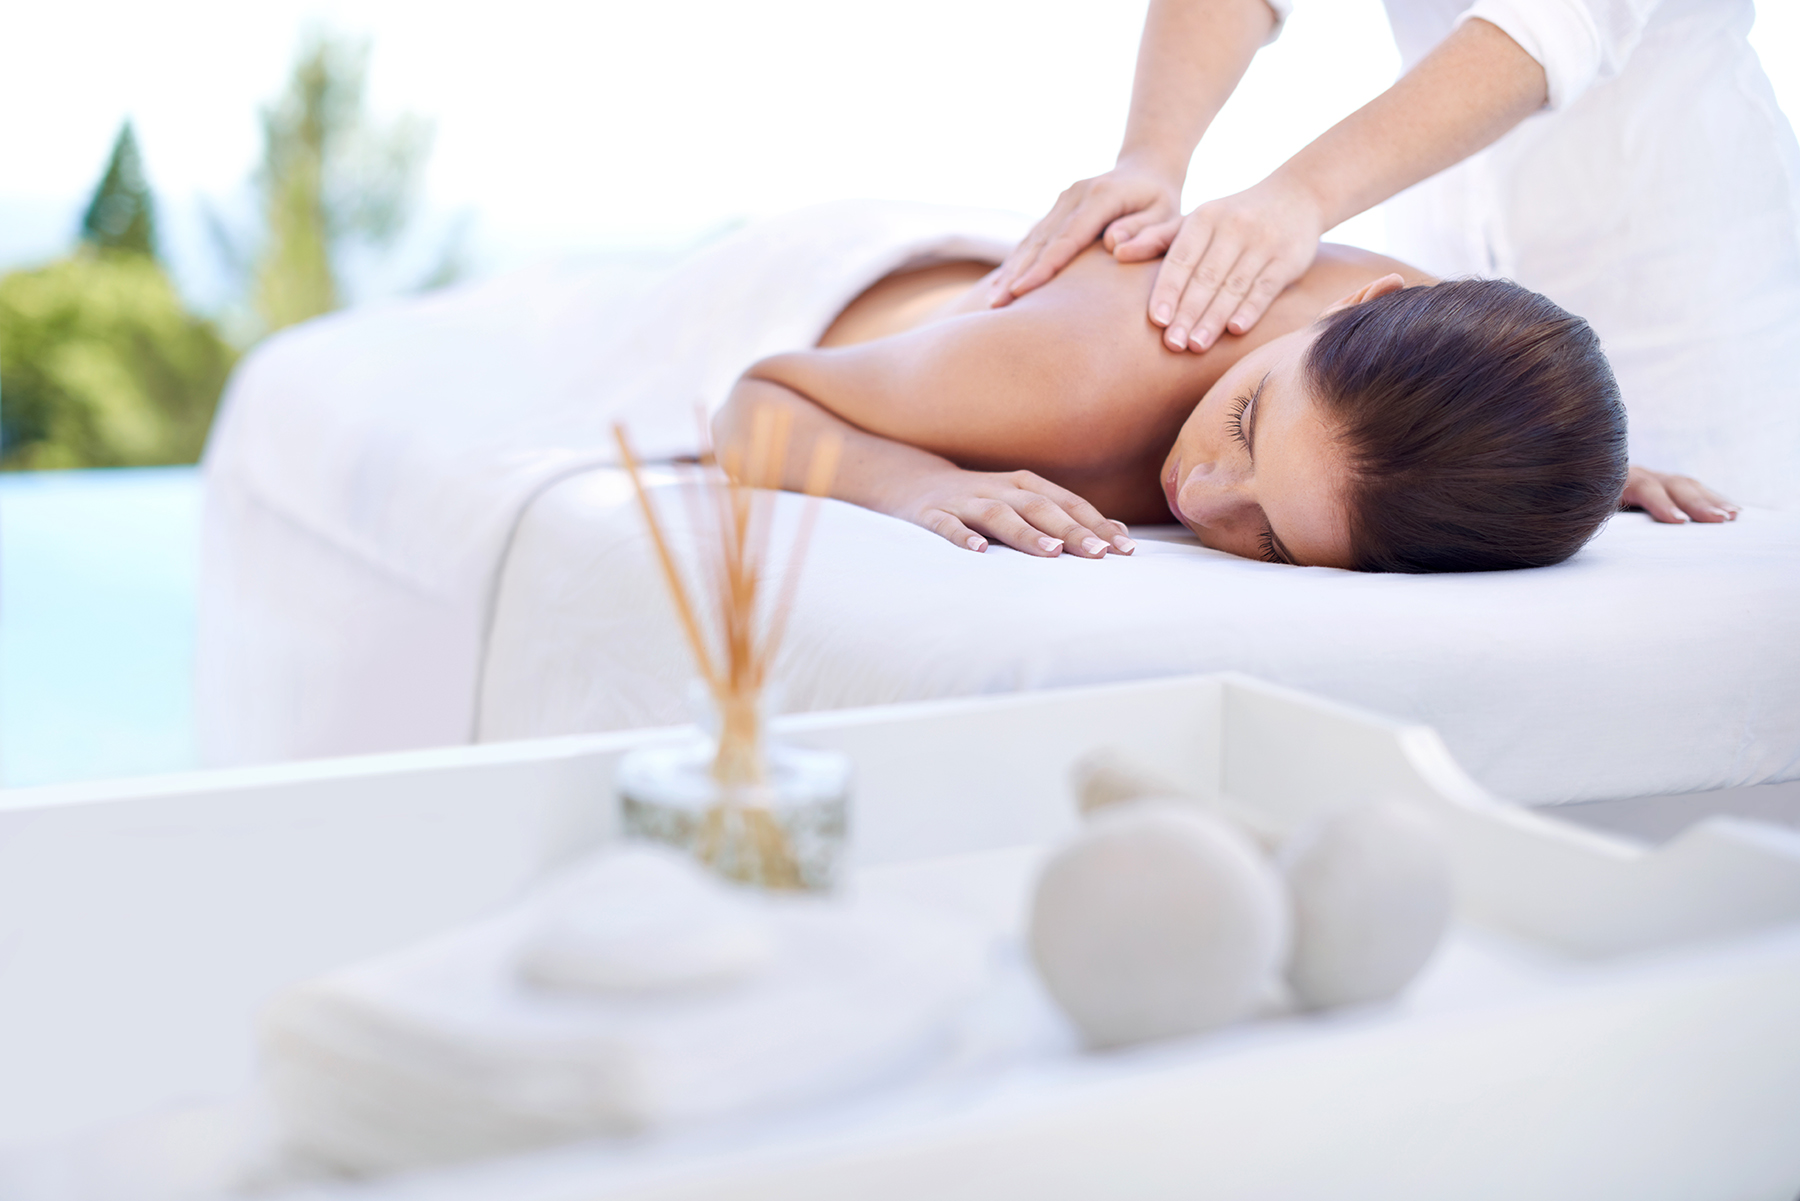 Salon Massage Thai Paris How Much To Tip For Massage And Other Spa Services Real Simple